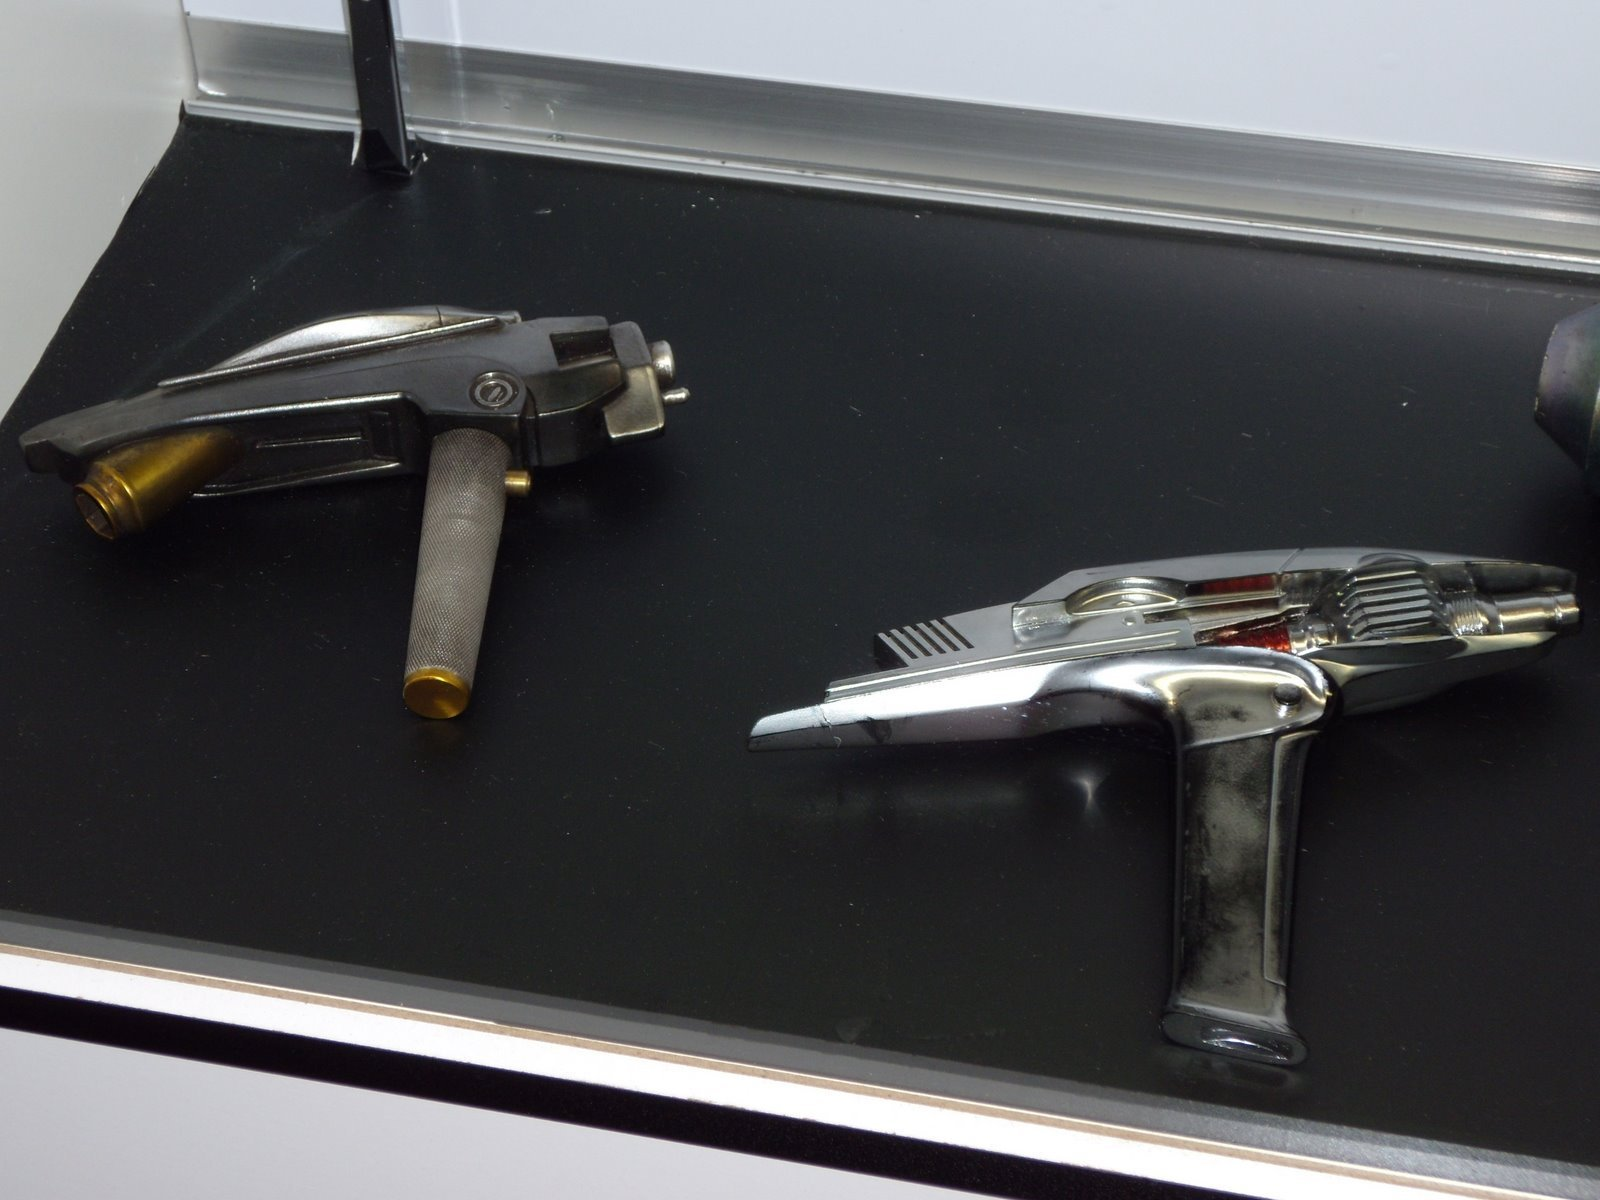 Original movie props from the new Star Trek movie - weapons and communicators